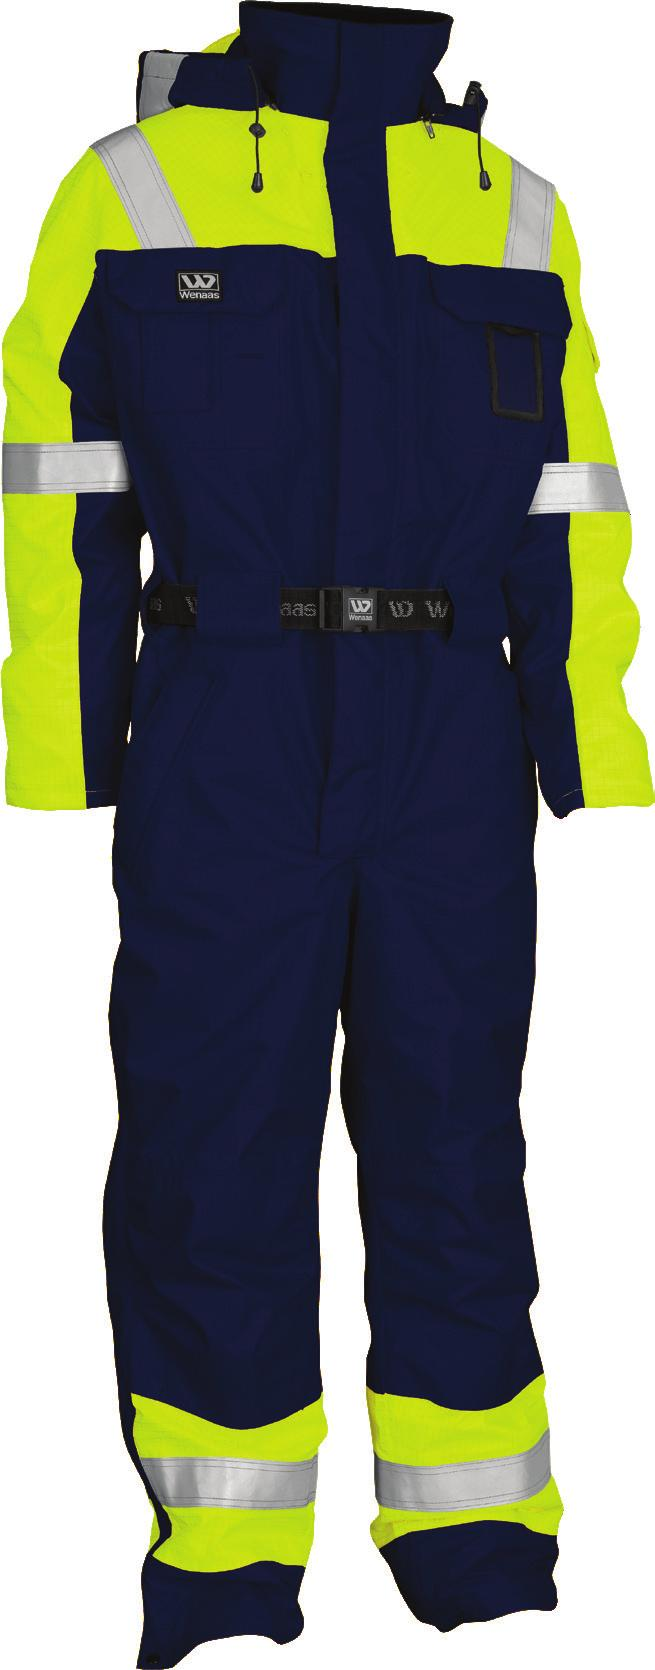 THERMAL + FR WENAAS OFFSHORE WINTER FR COVERALL Model No.